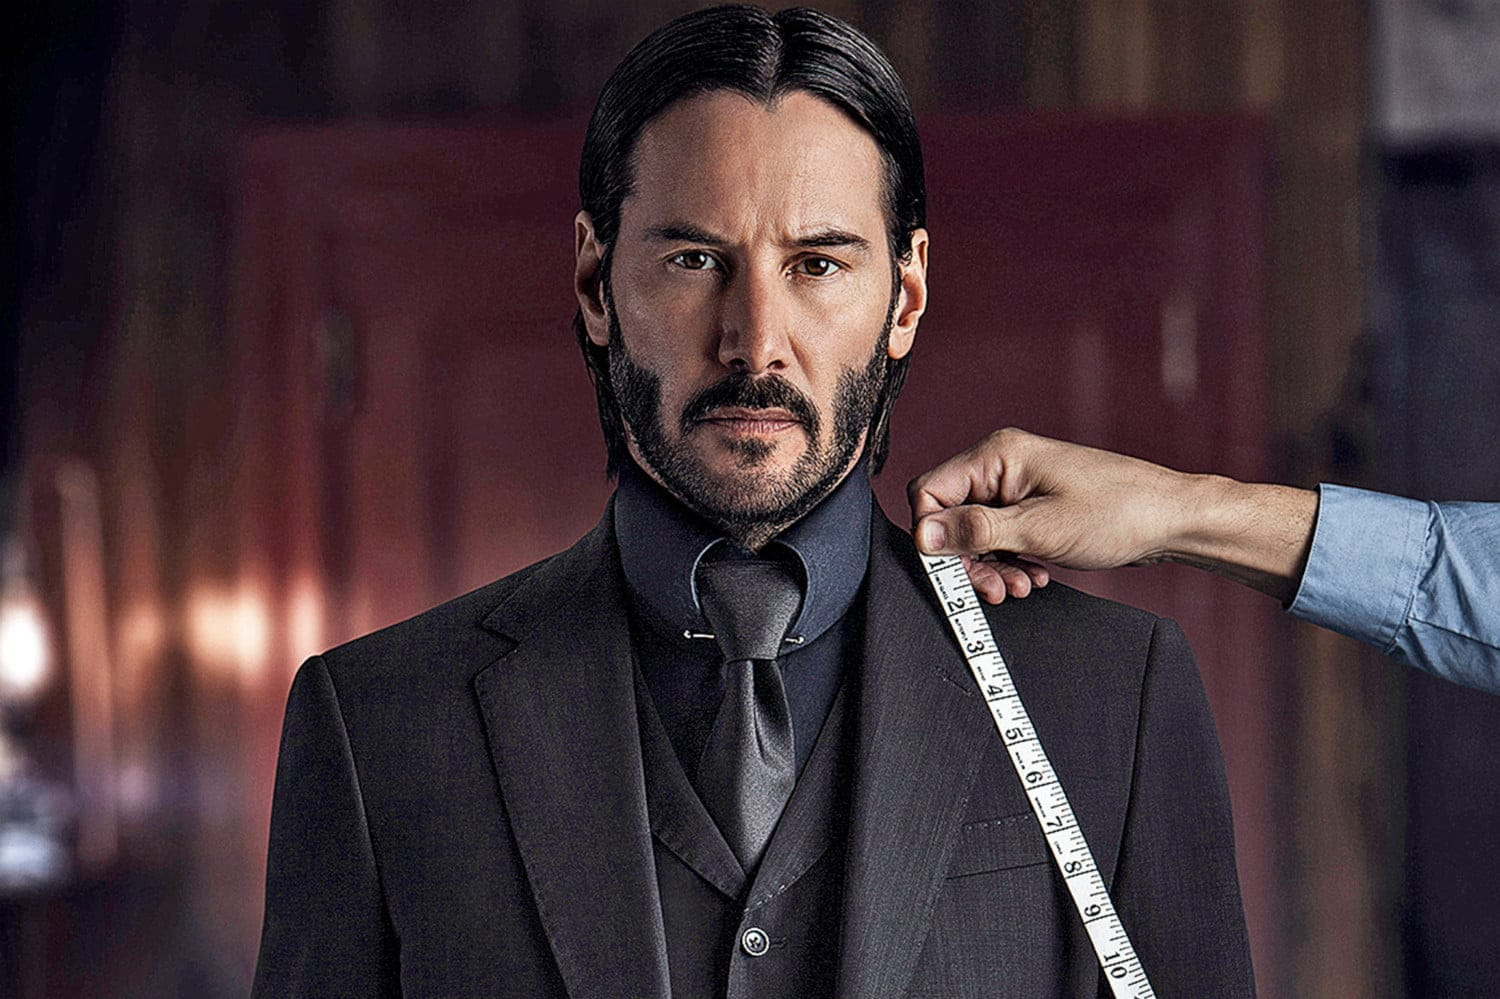 Director of John Wick reveals that Chapter 4 is in production.